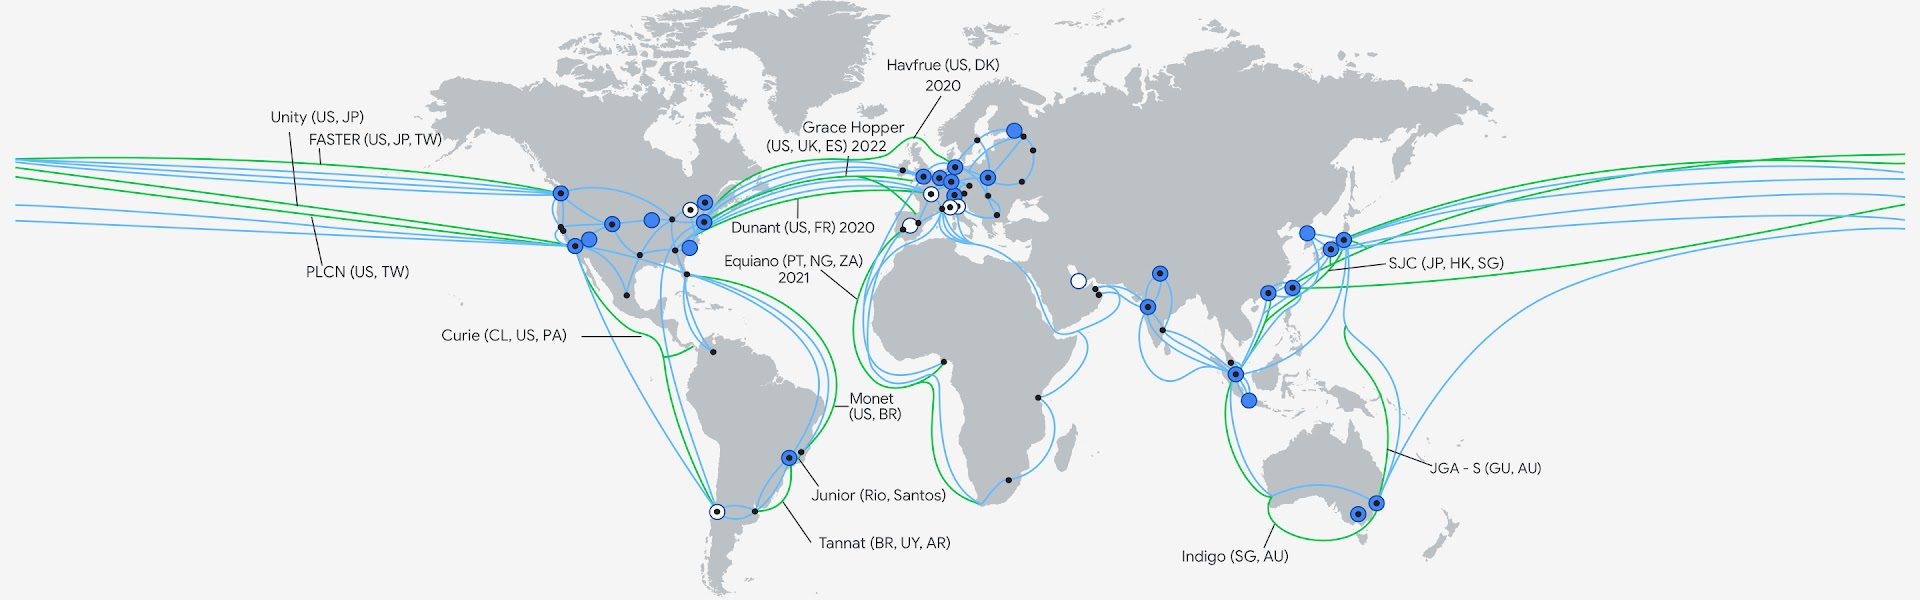 Map of Google Cloud Infrastructure